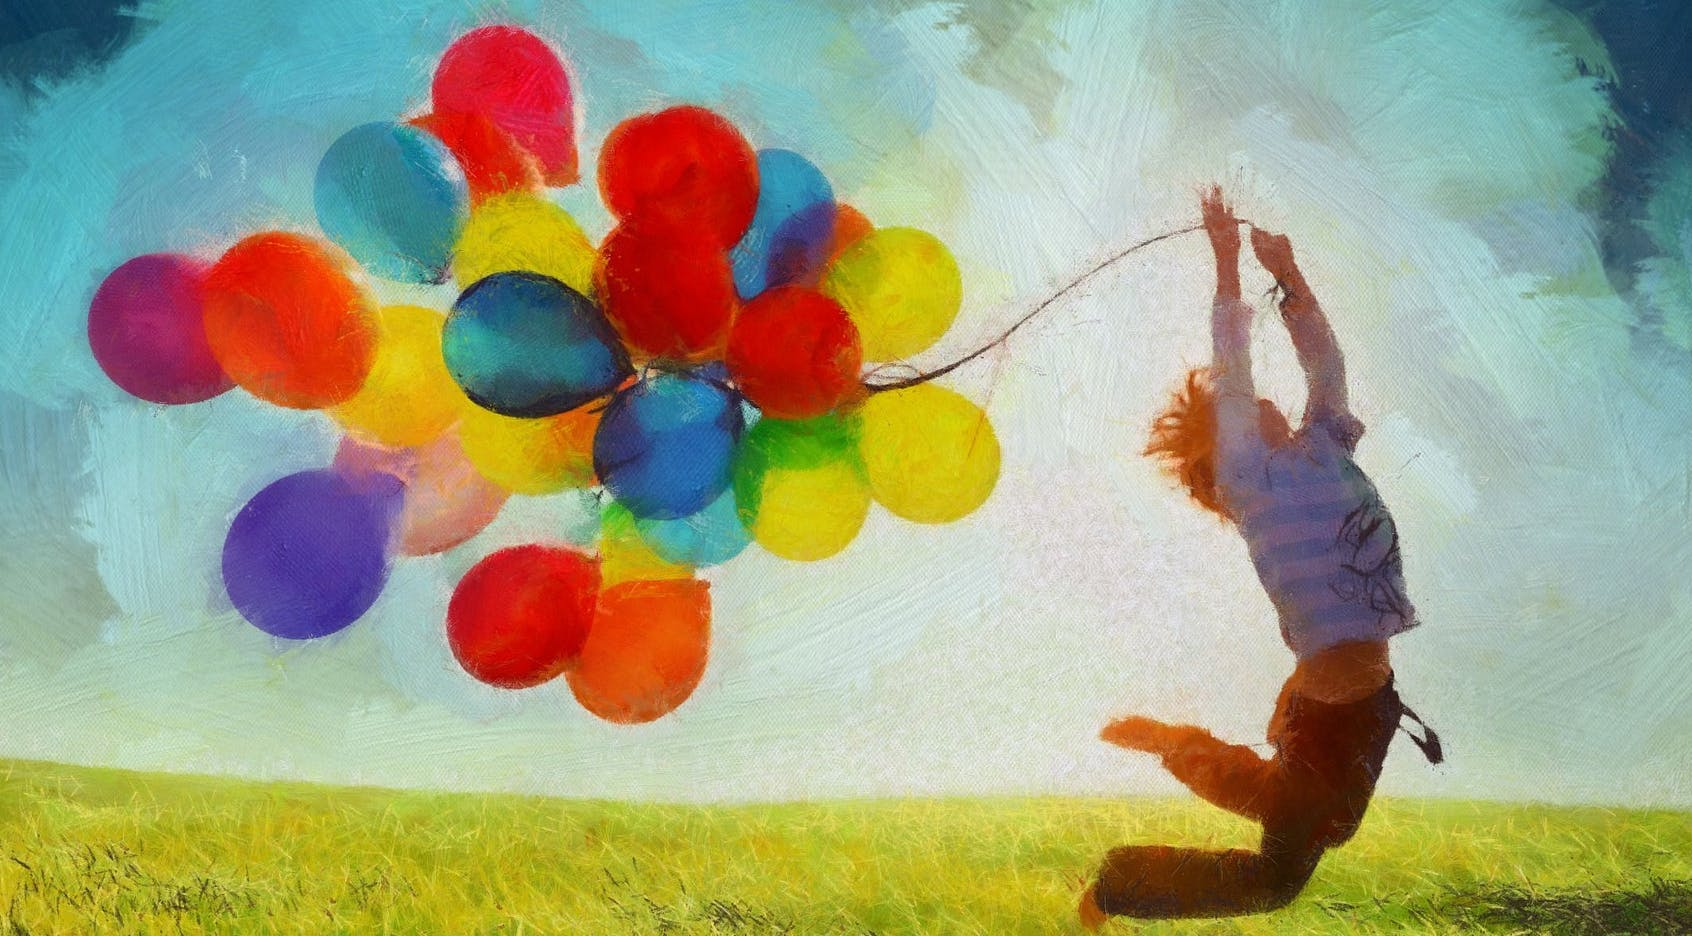 Painting of a child carrying colourful balloons in a field.